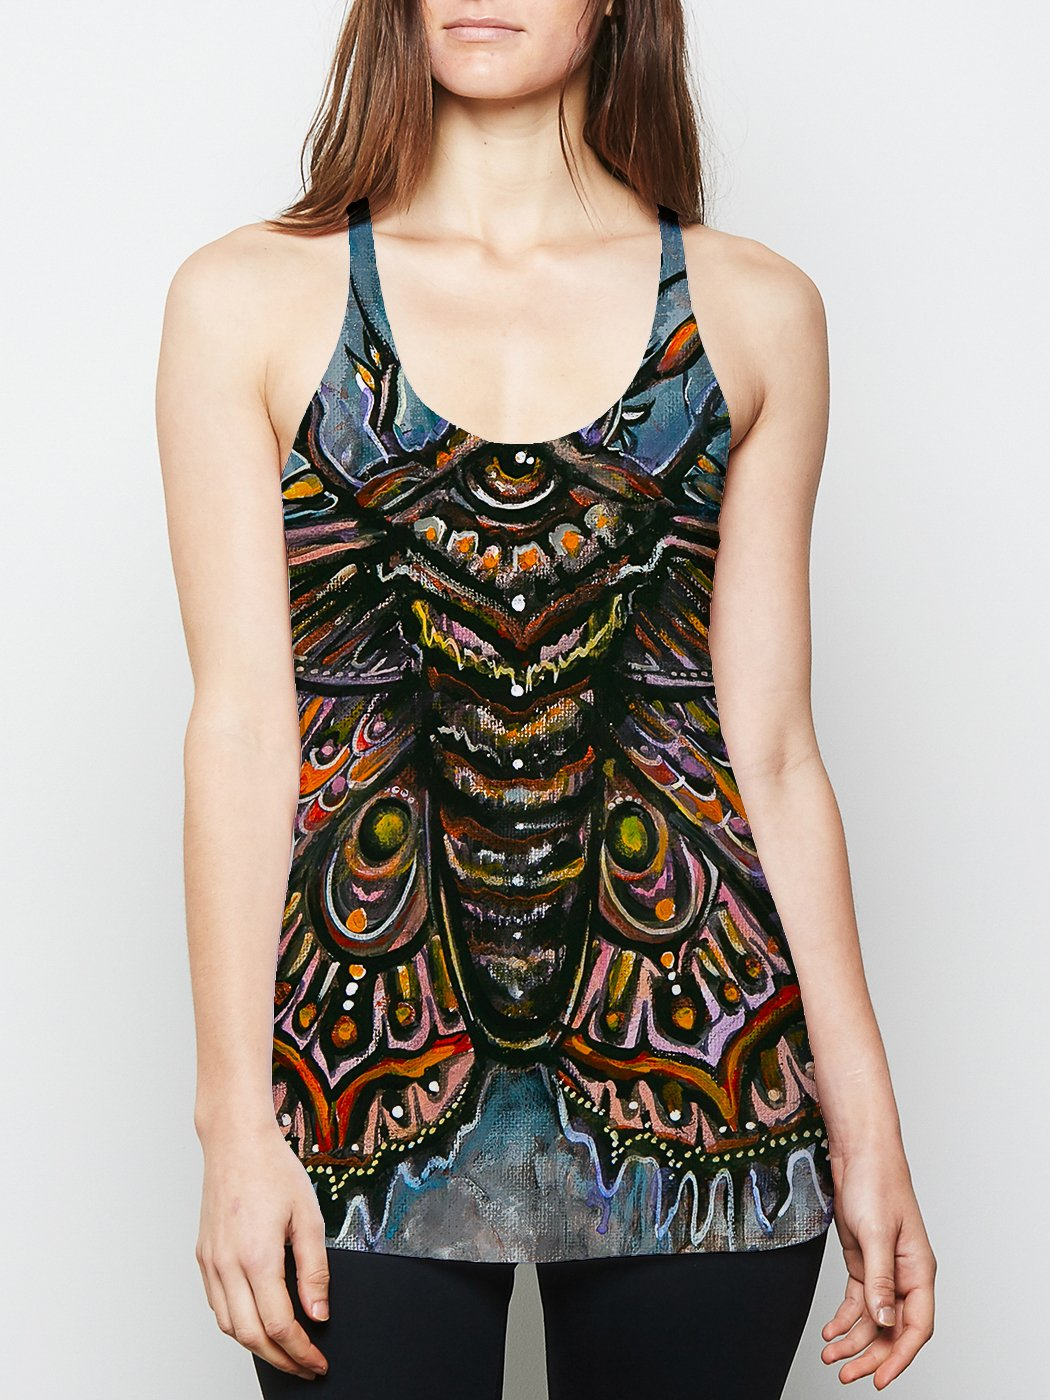 Third Eye Moth Racerback Tank Tank Tops Electro Threads